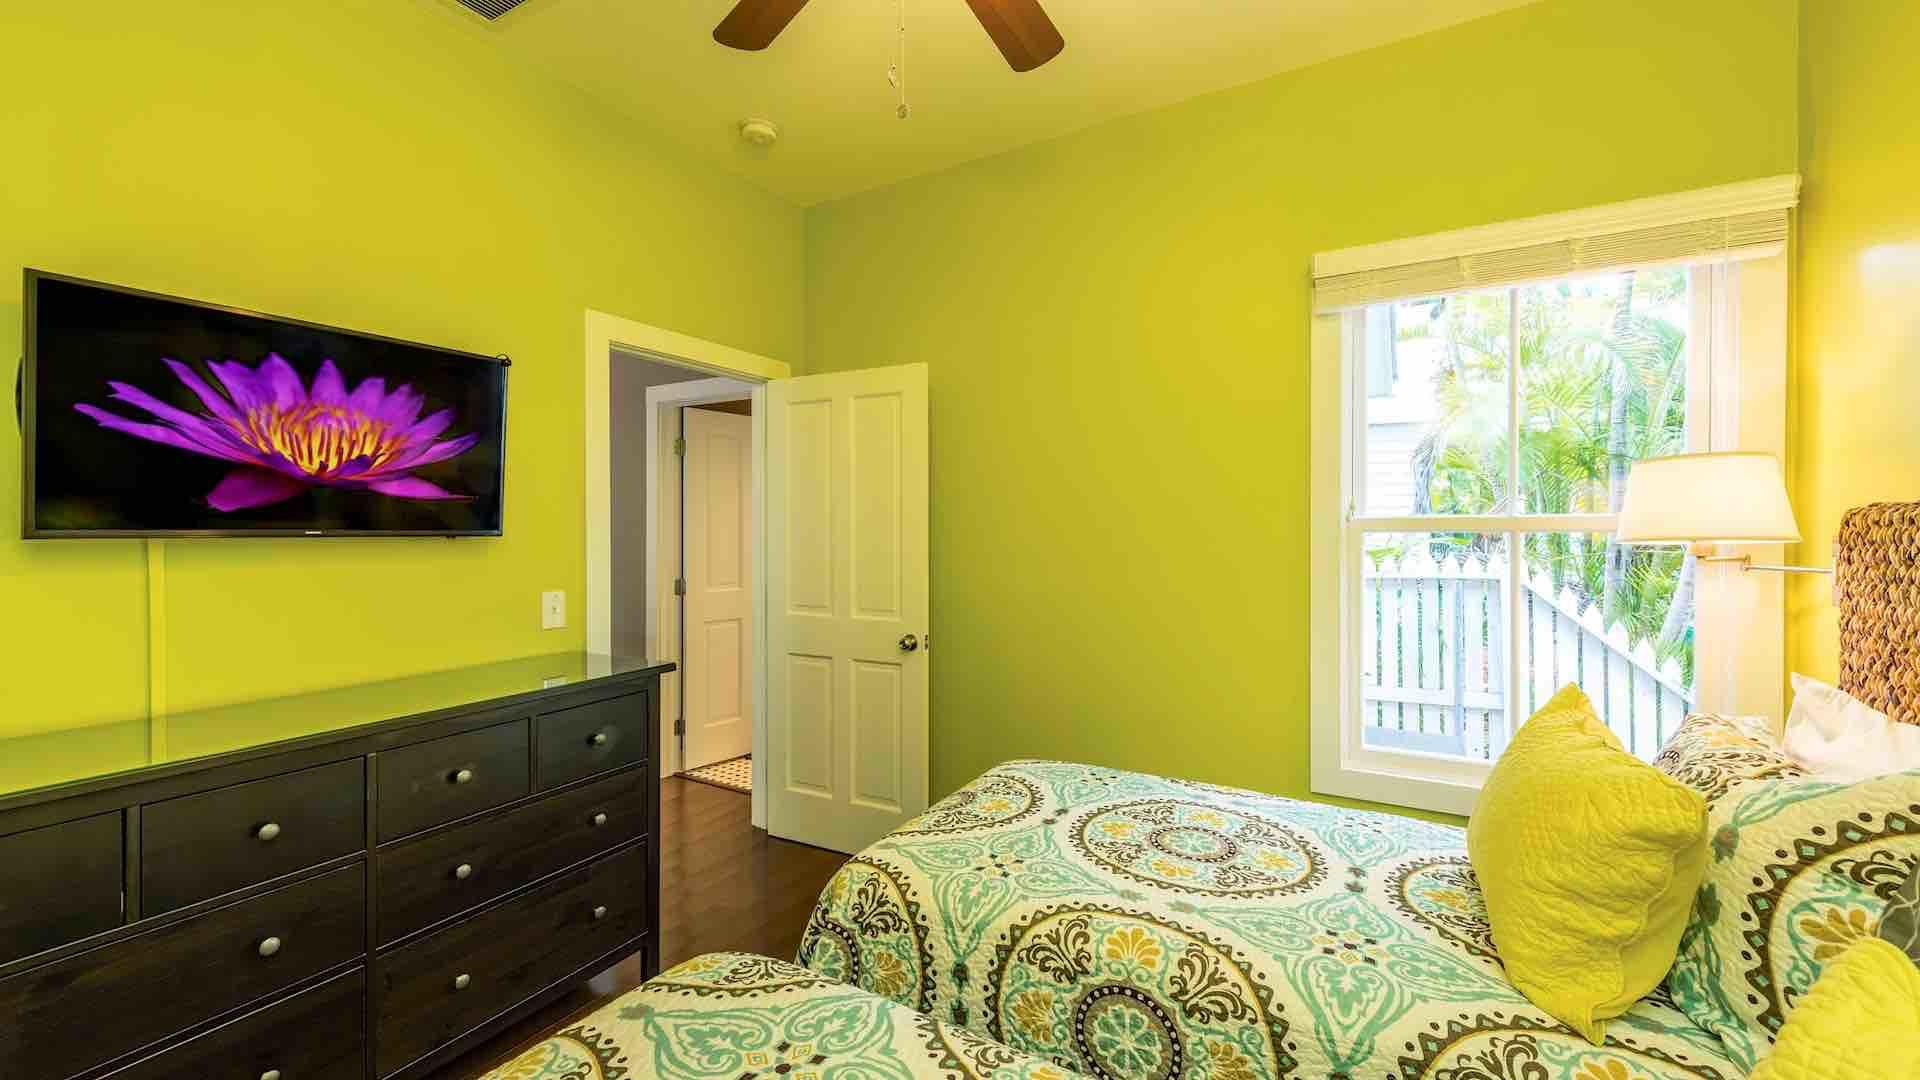 The guest bedroom has a large mounted flat screen TV...